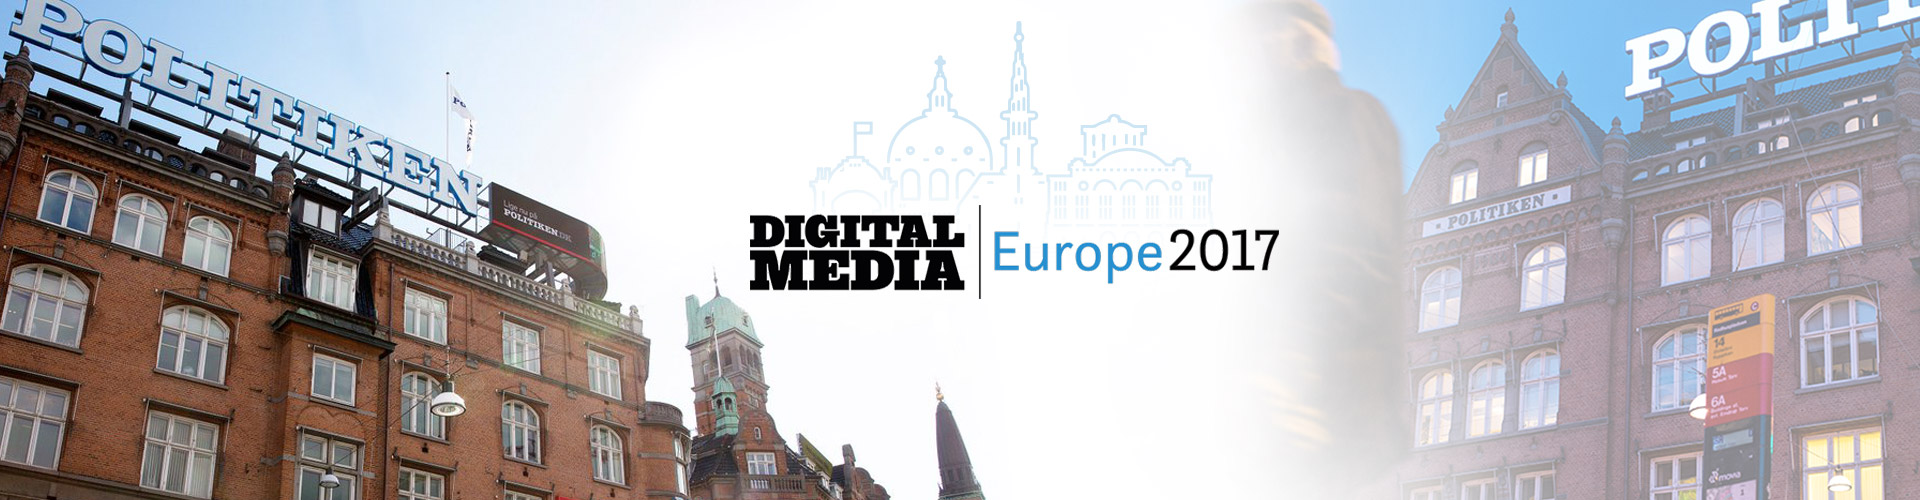 Header image of Digital Media Europe 2017 Round-up